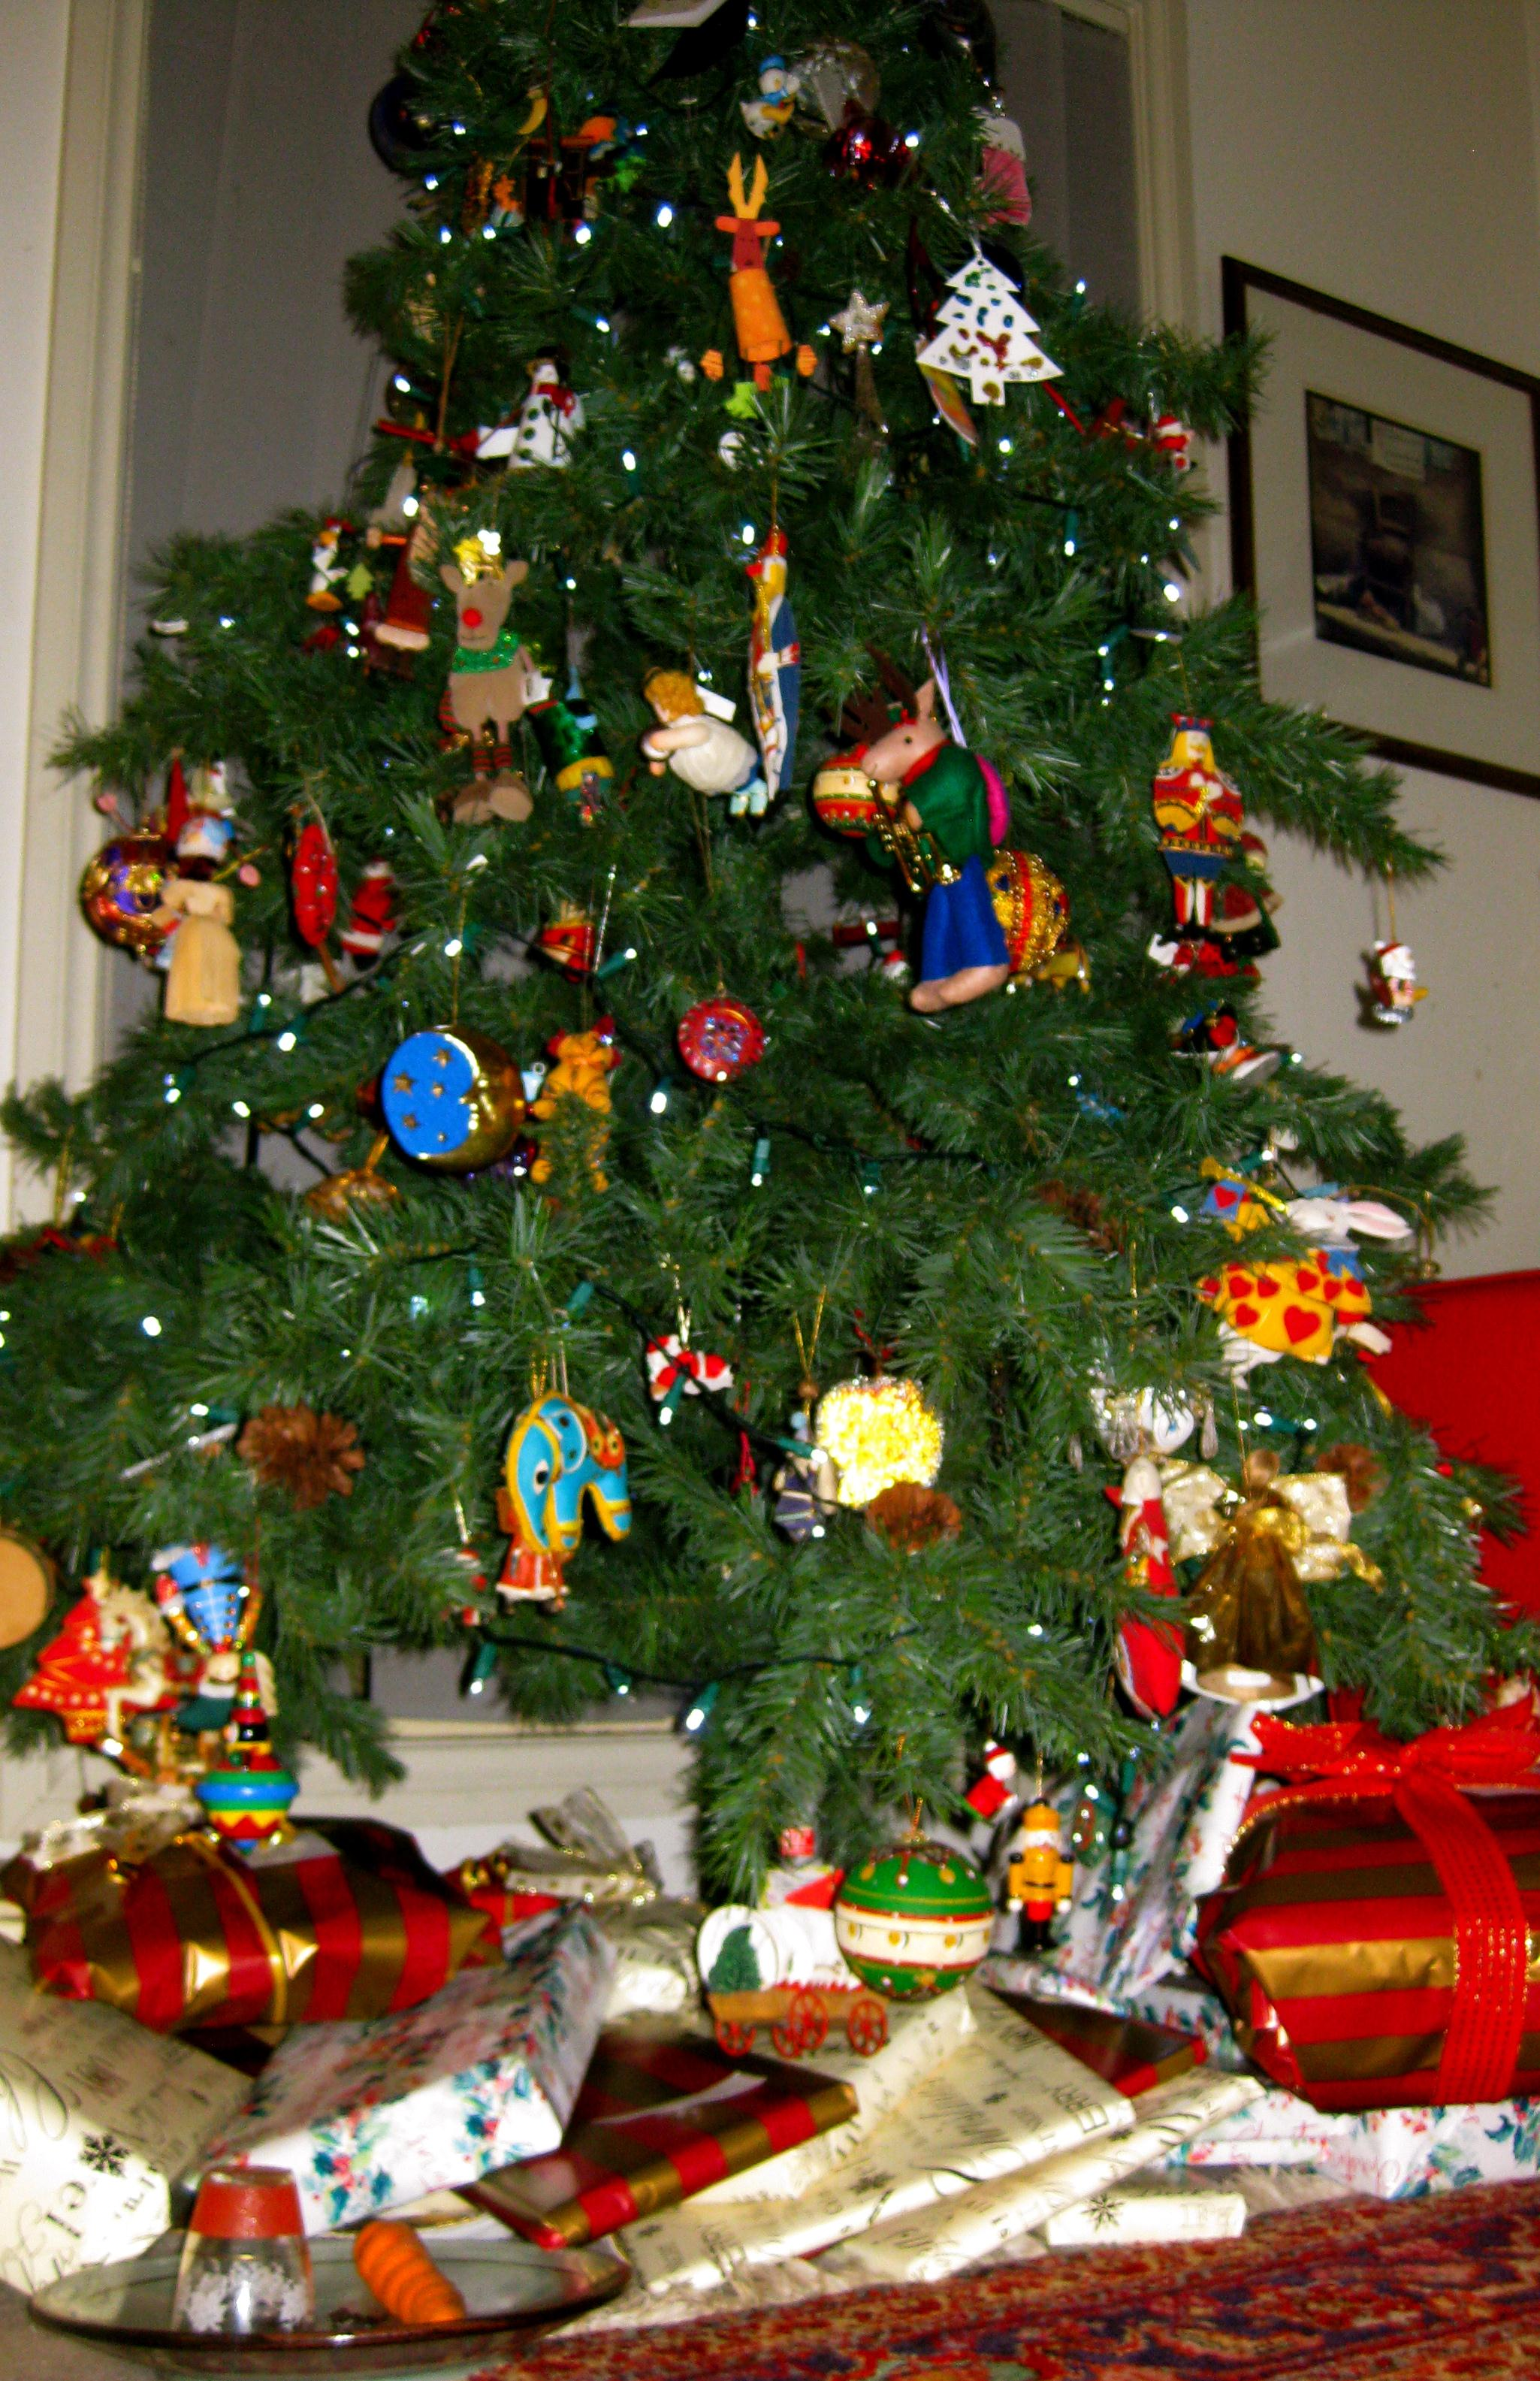 When is Christmas Day in New Zealand in 2012? - When is the holiday